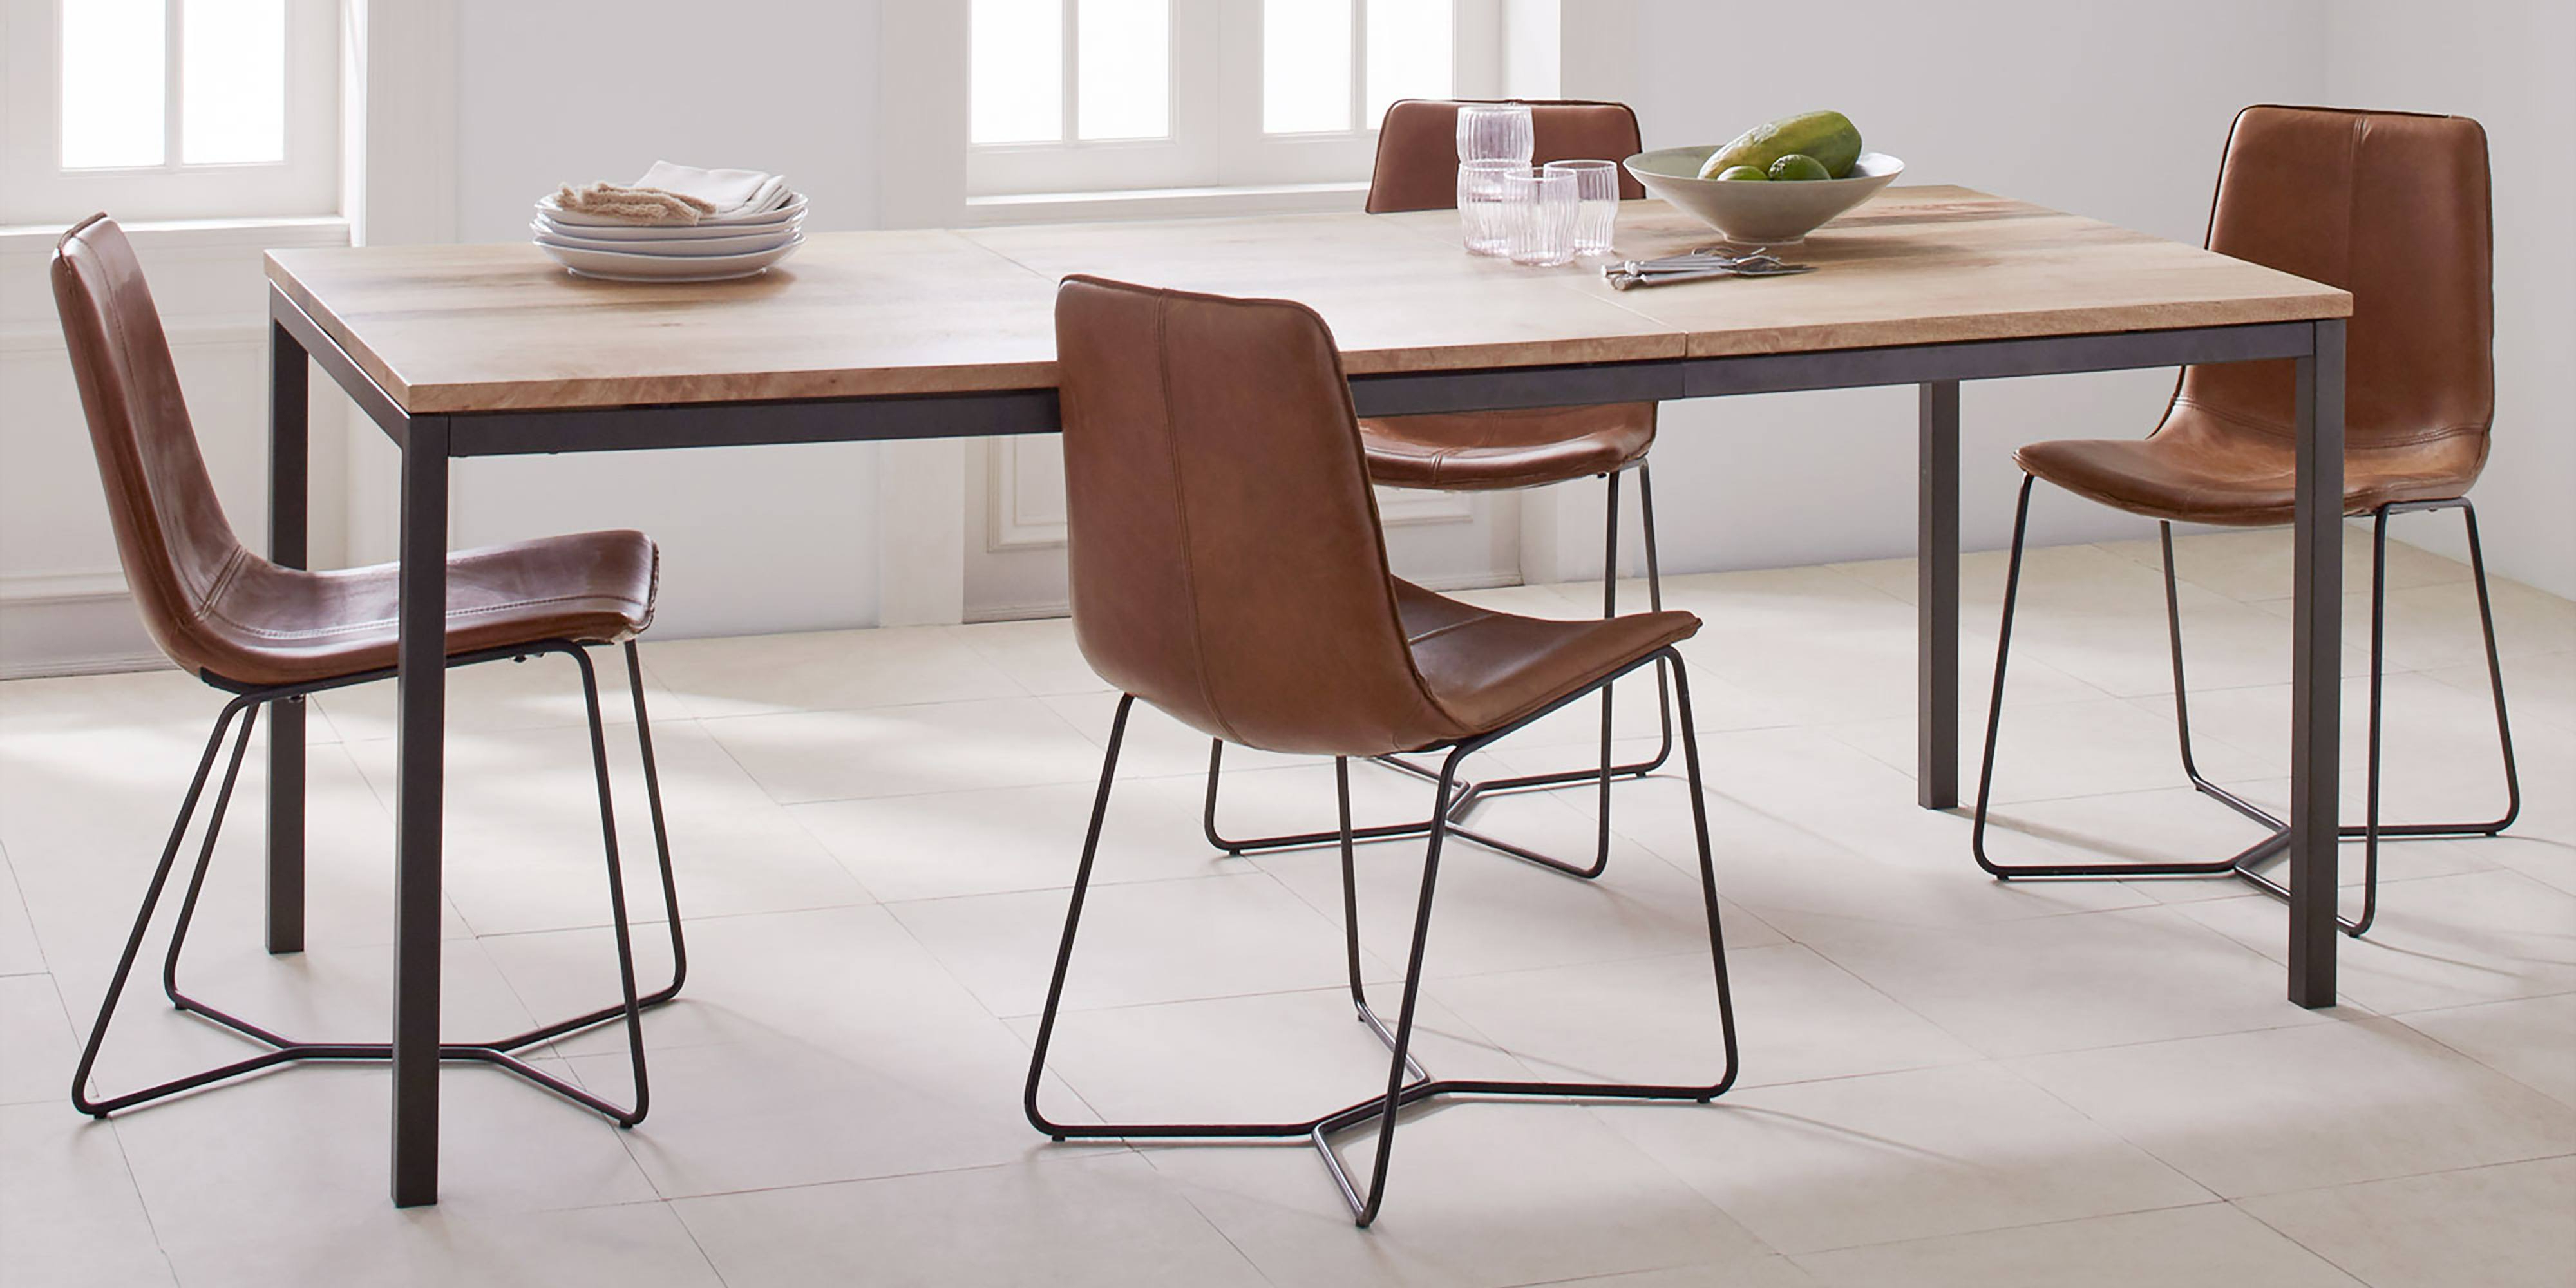 How To Buy A Dining Or Kitchen Table And Ones We Like For Under In Well Known 33 Inch Industrial Round Tables (View 14 of 20)